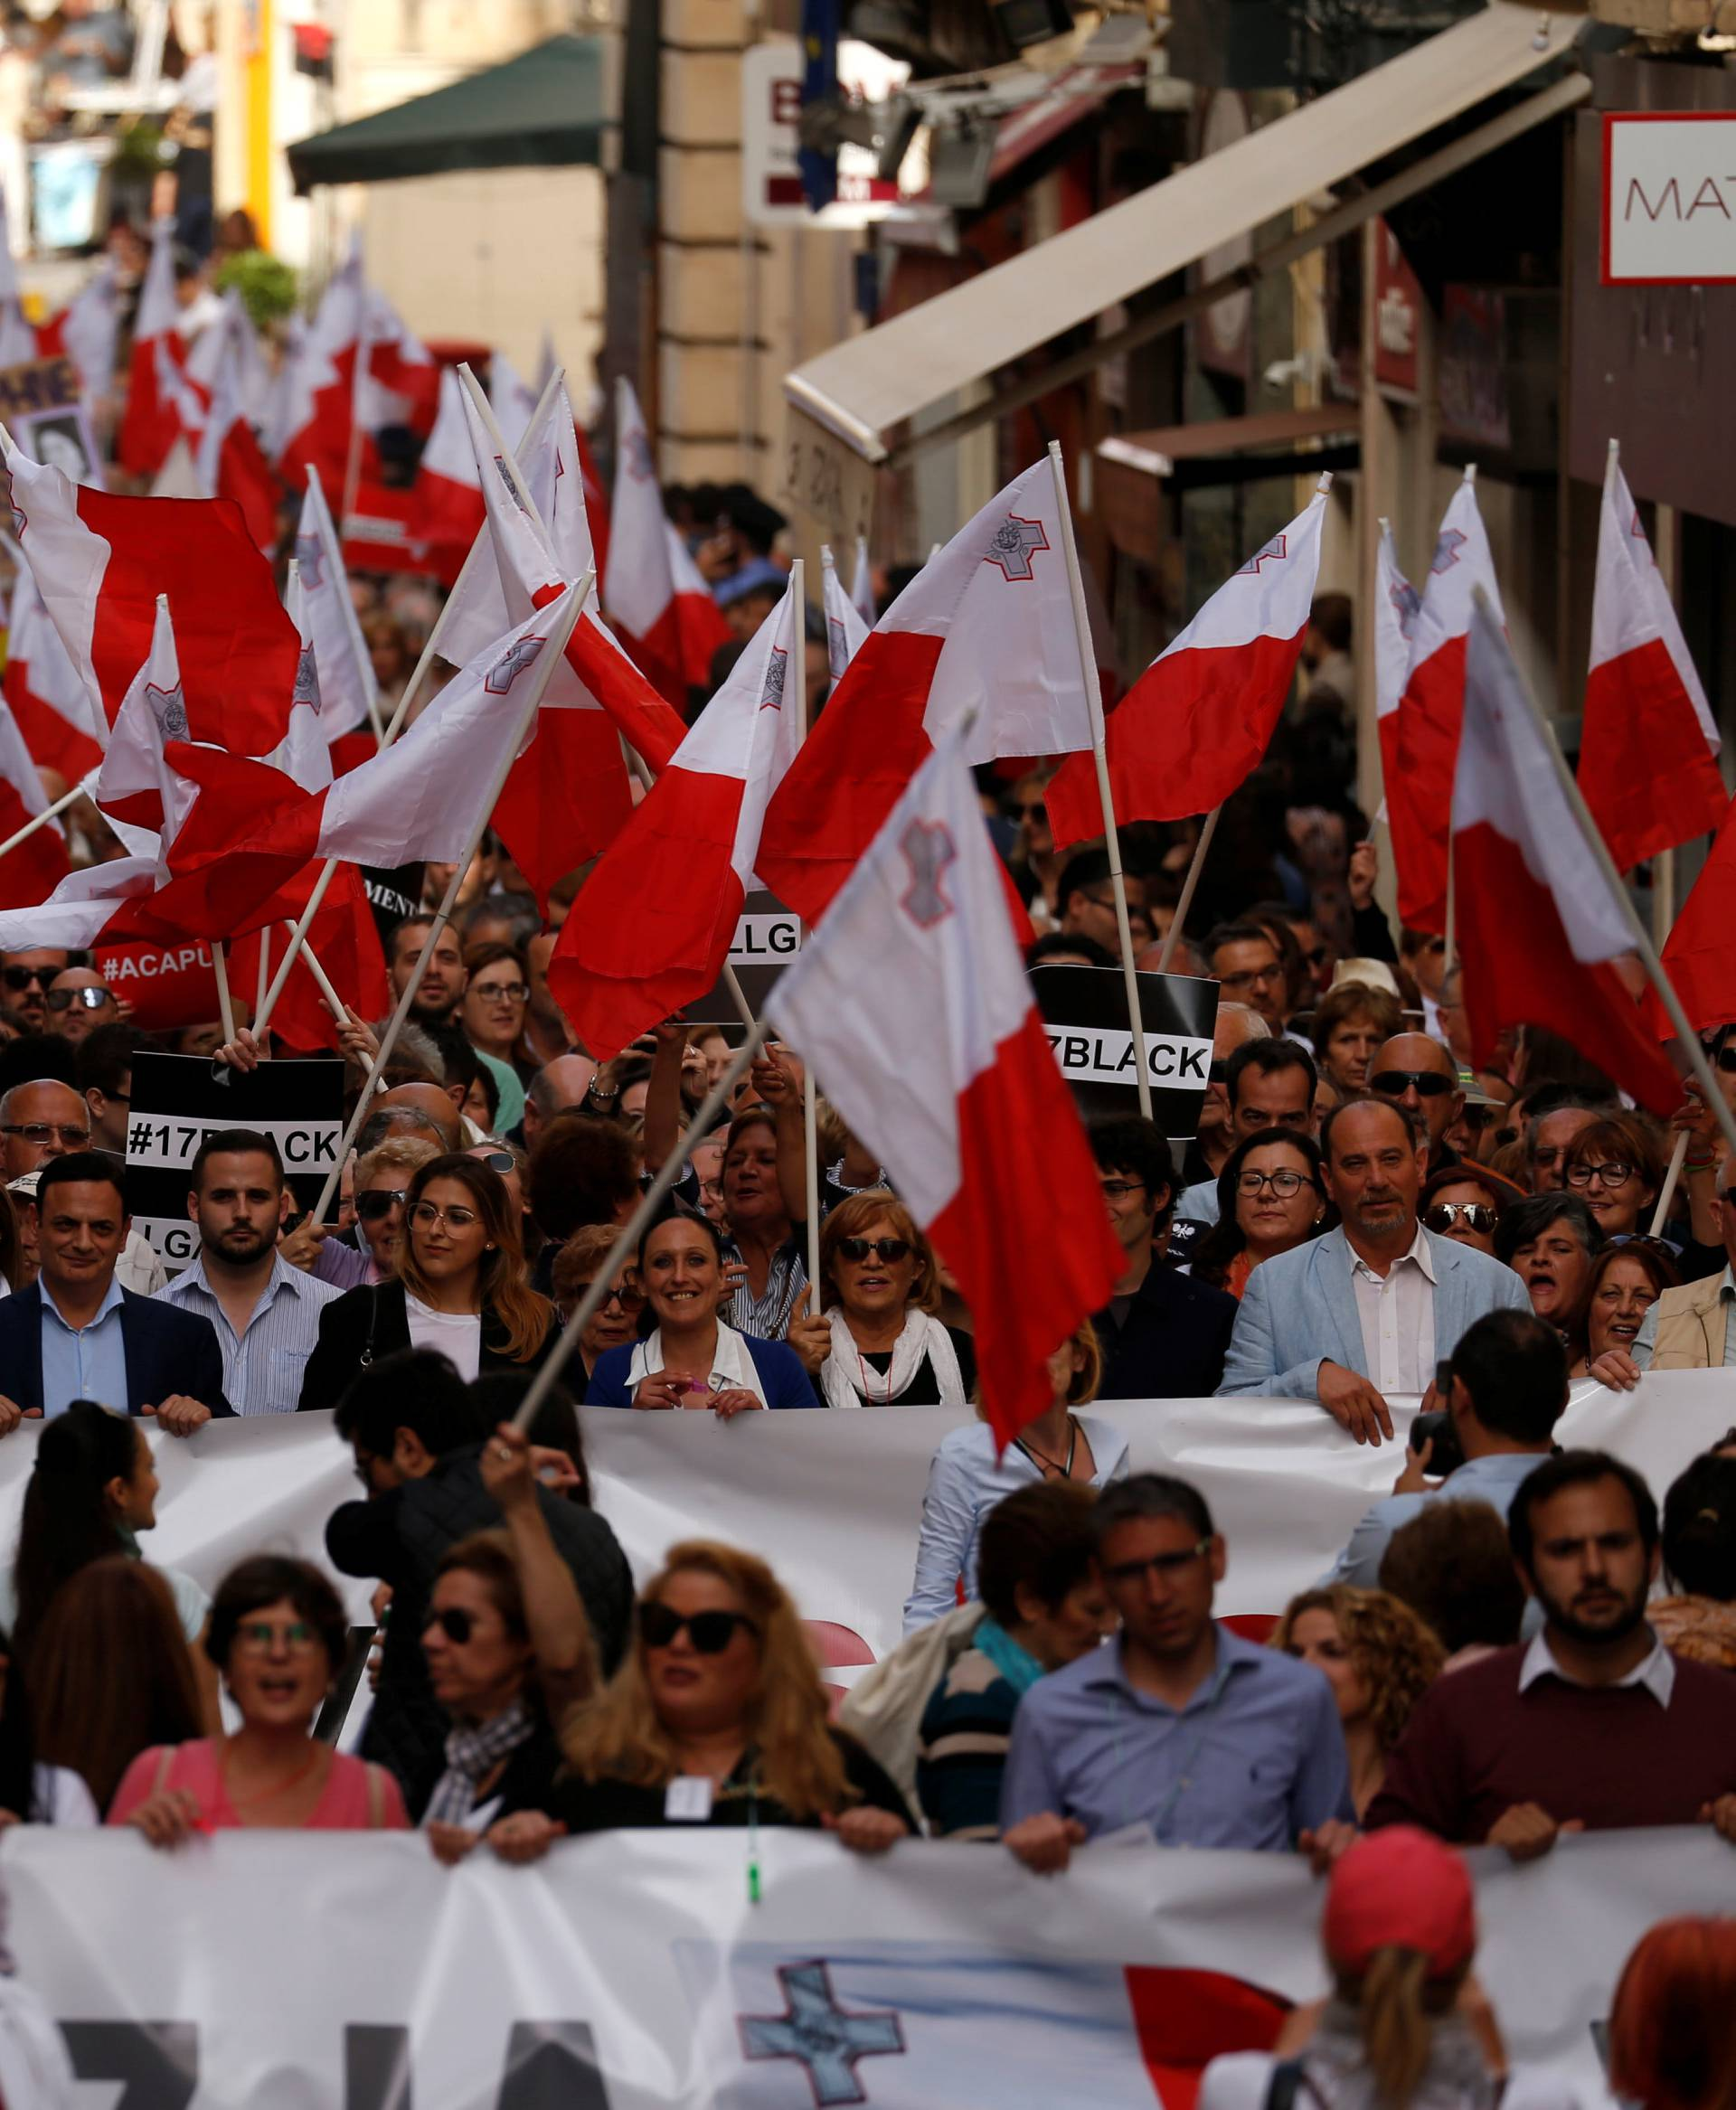 People carry Maltese flags during a protest against government corruption in light of the revelations in the Daphne Project, in Valletta